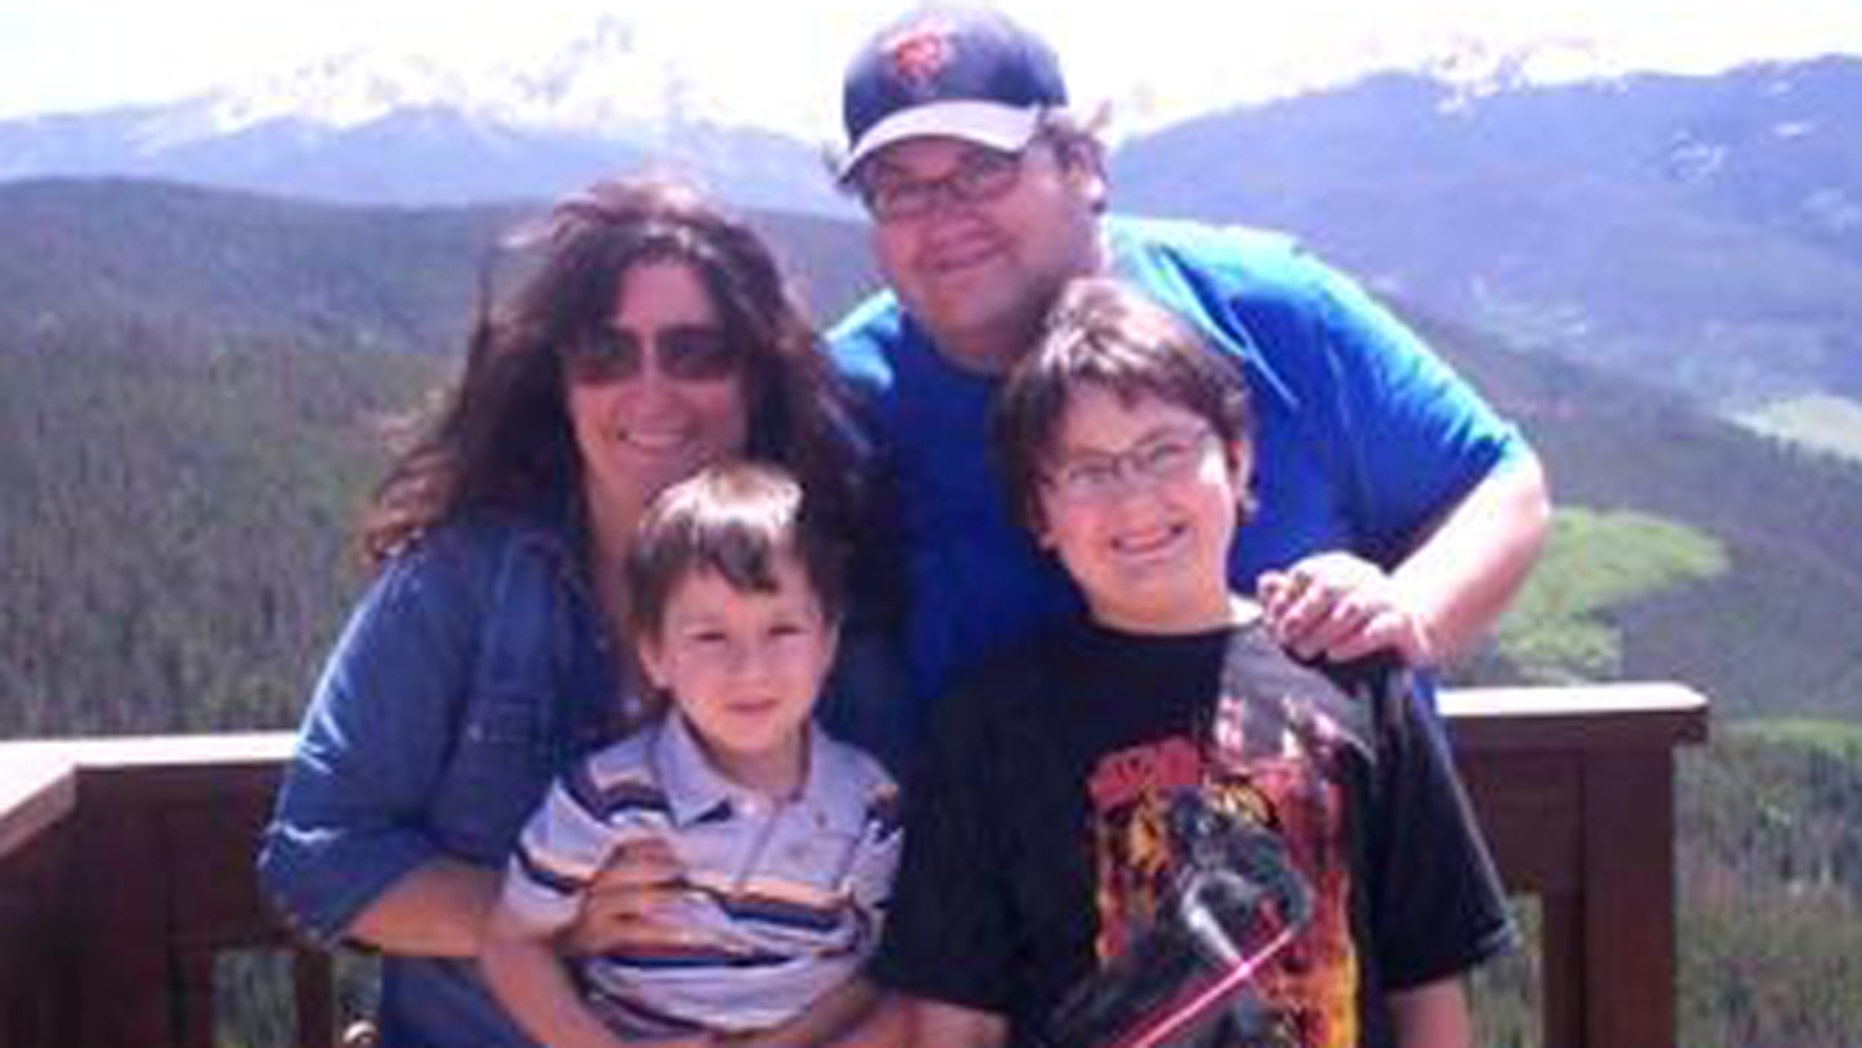 Mason Parrish, front right, with his father, mother and brother.